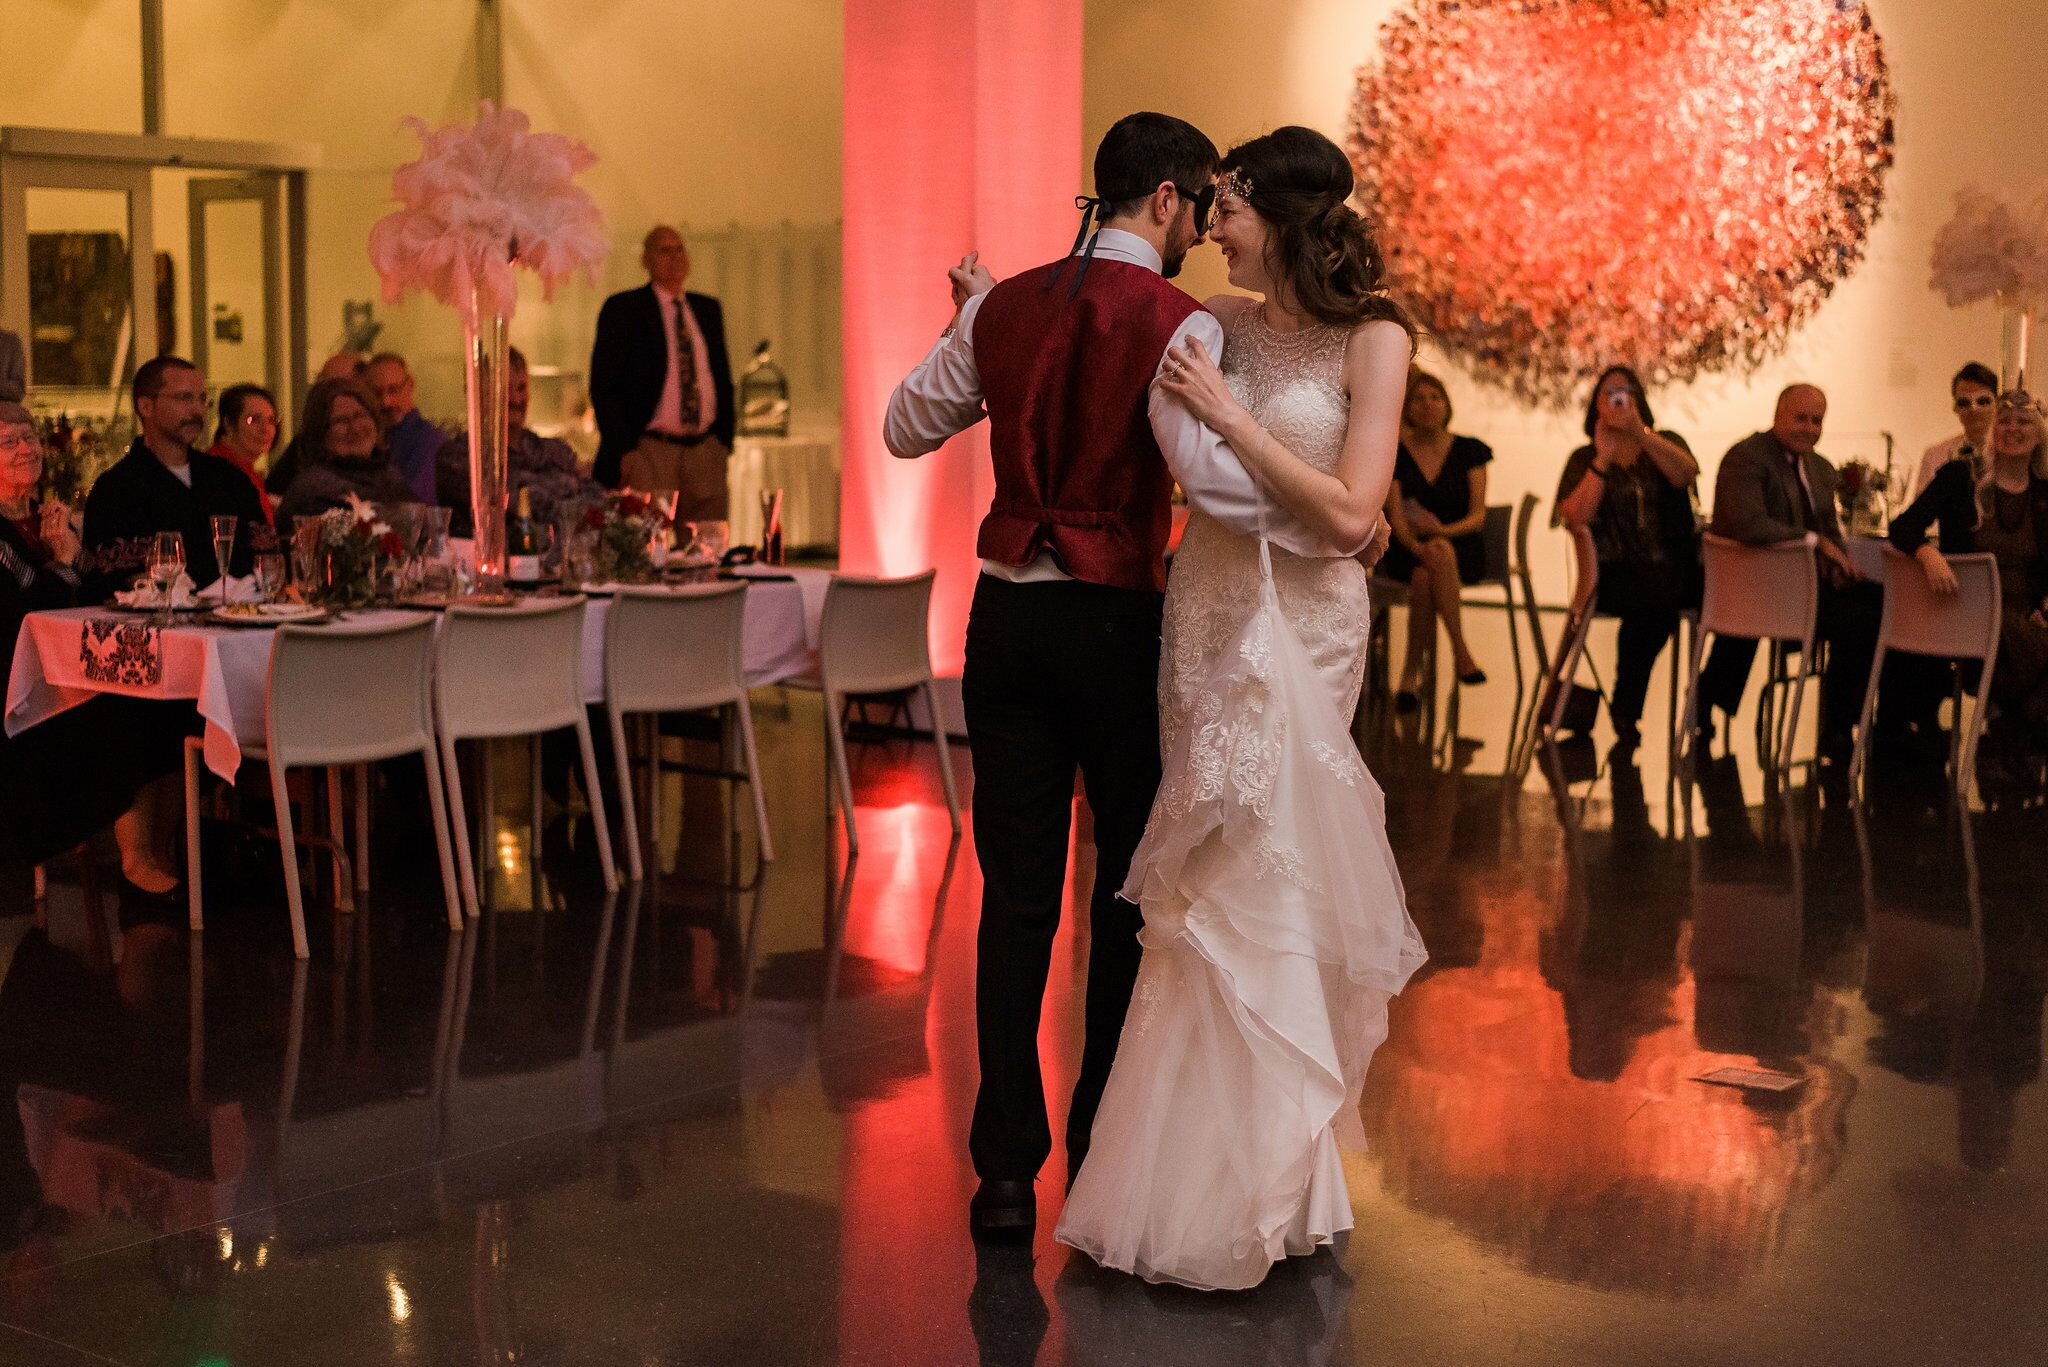 Wedding Photographers in Des Moines, IA - The Knot